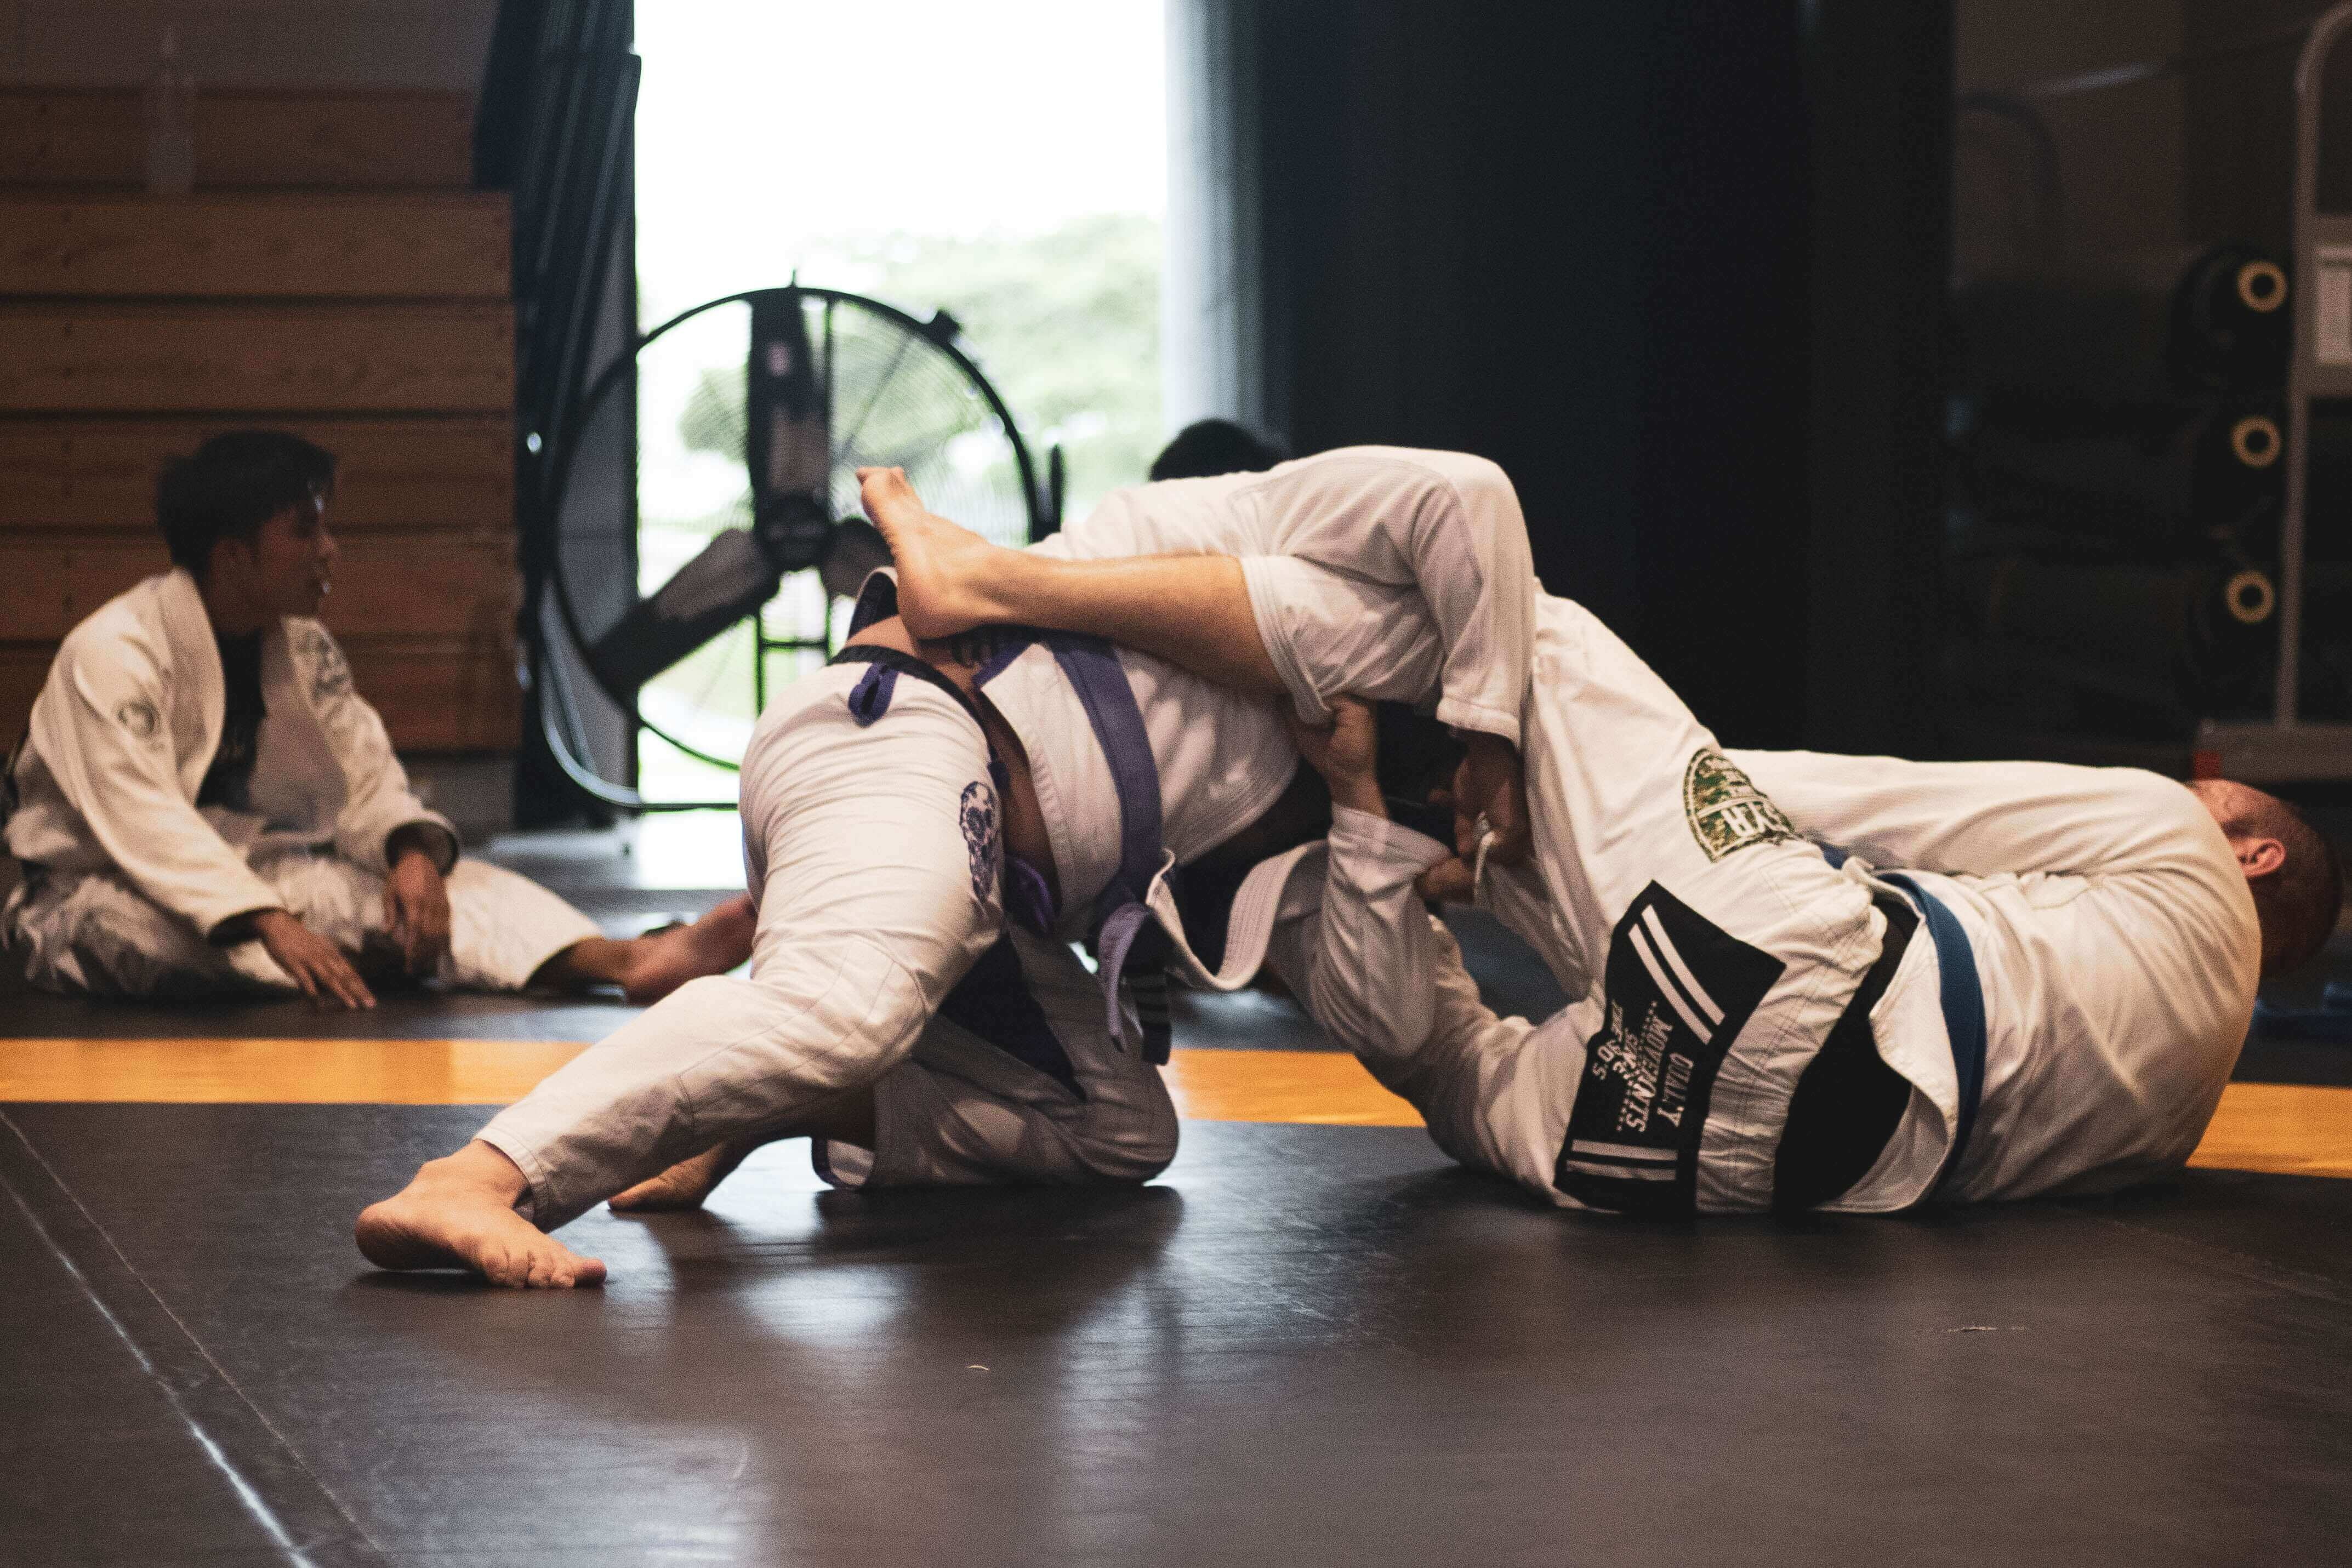 Automate These 5 Processes to Grow Your Martial Arts Business